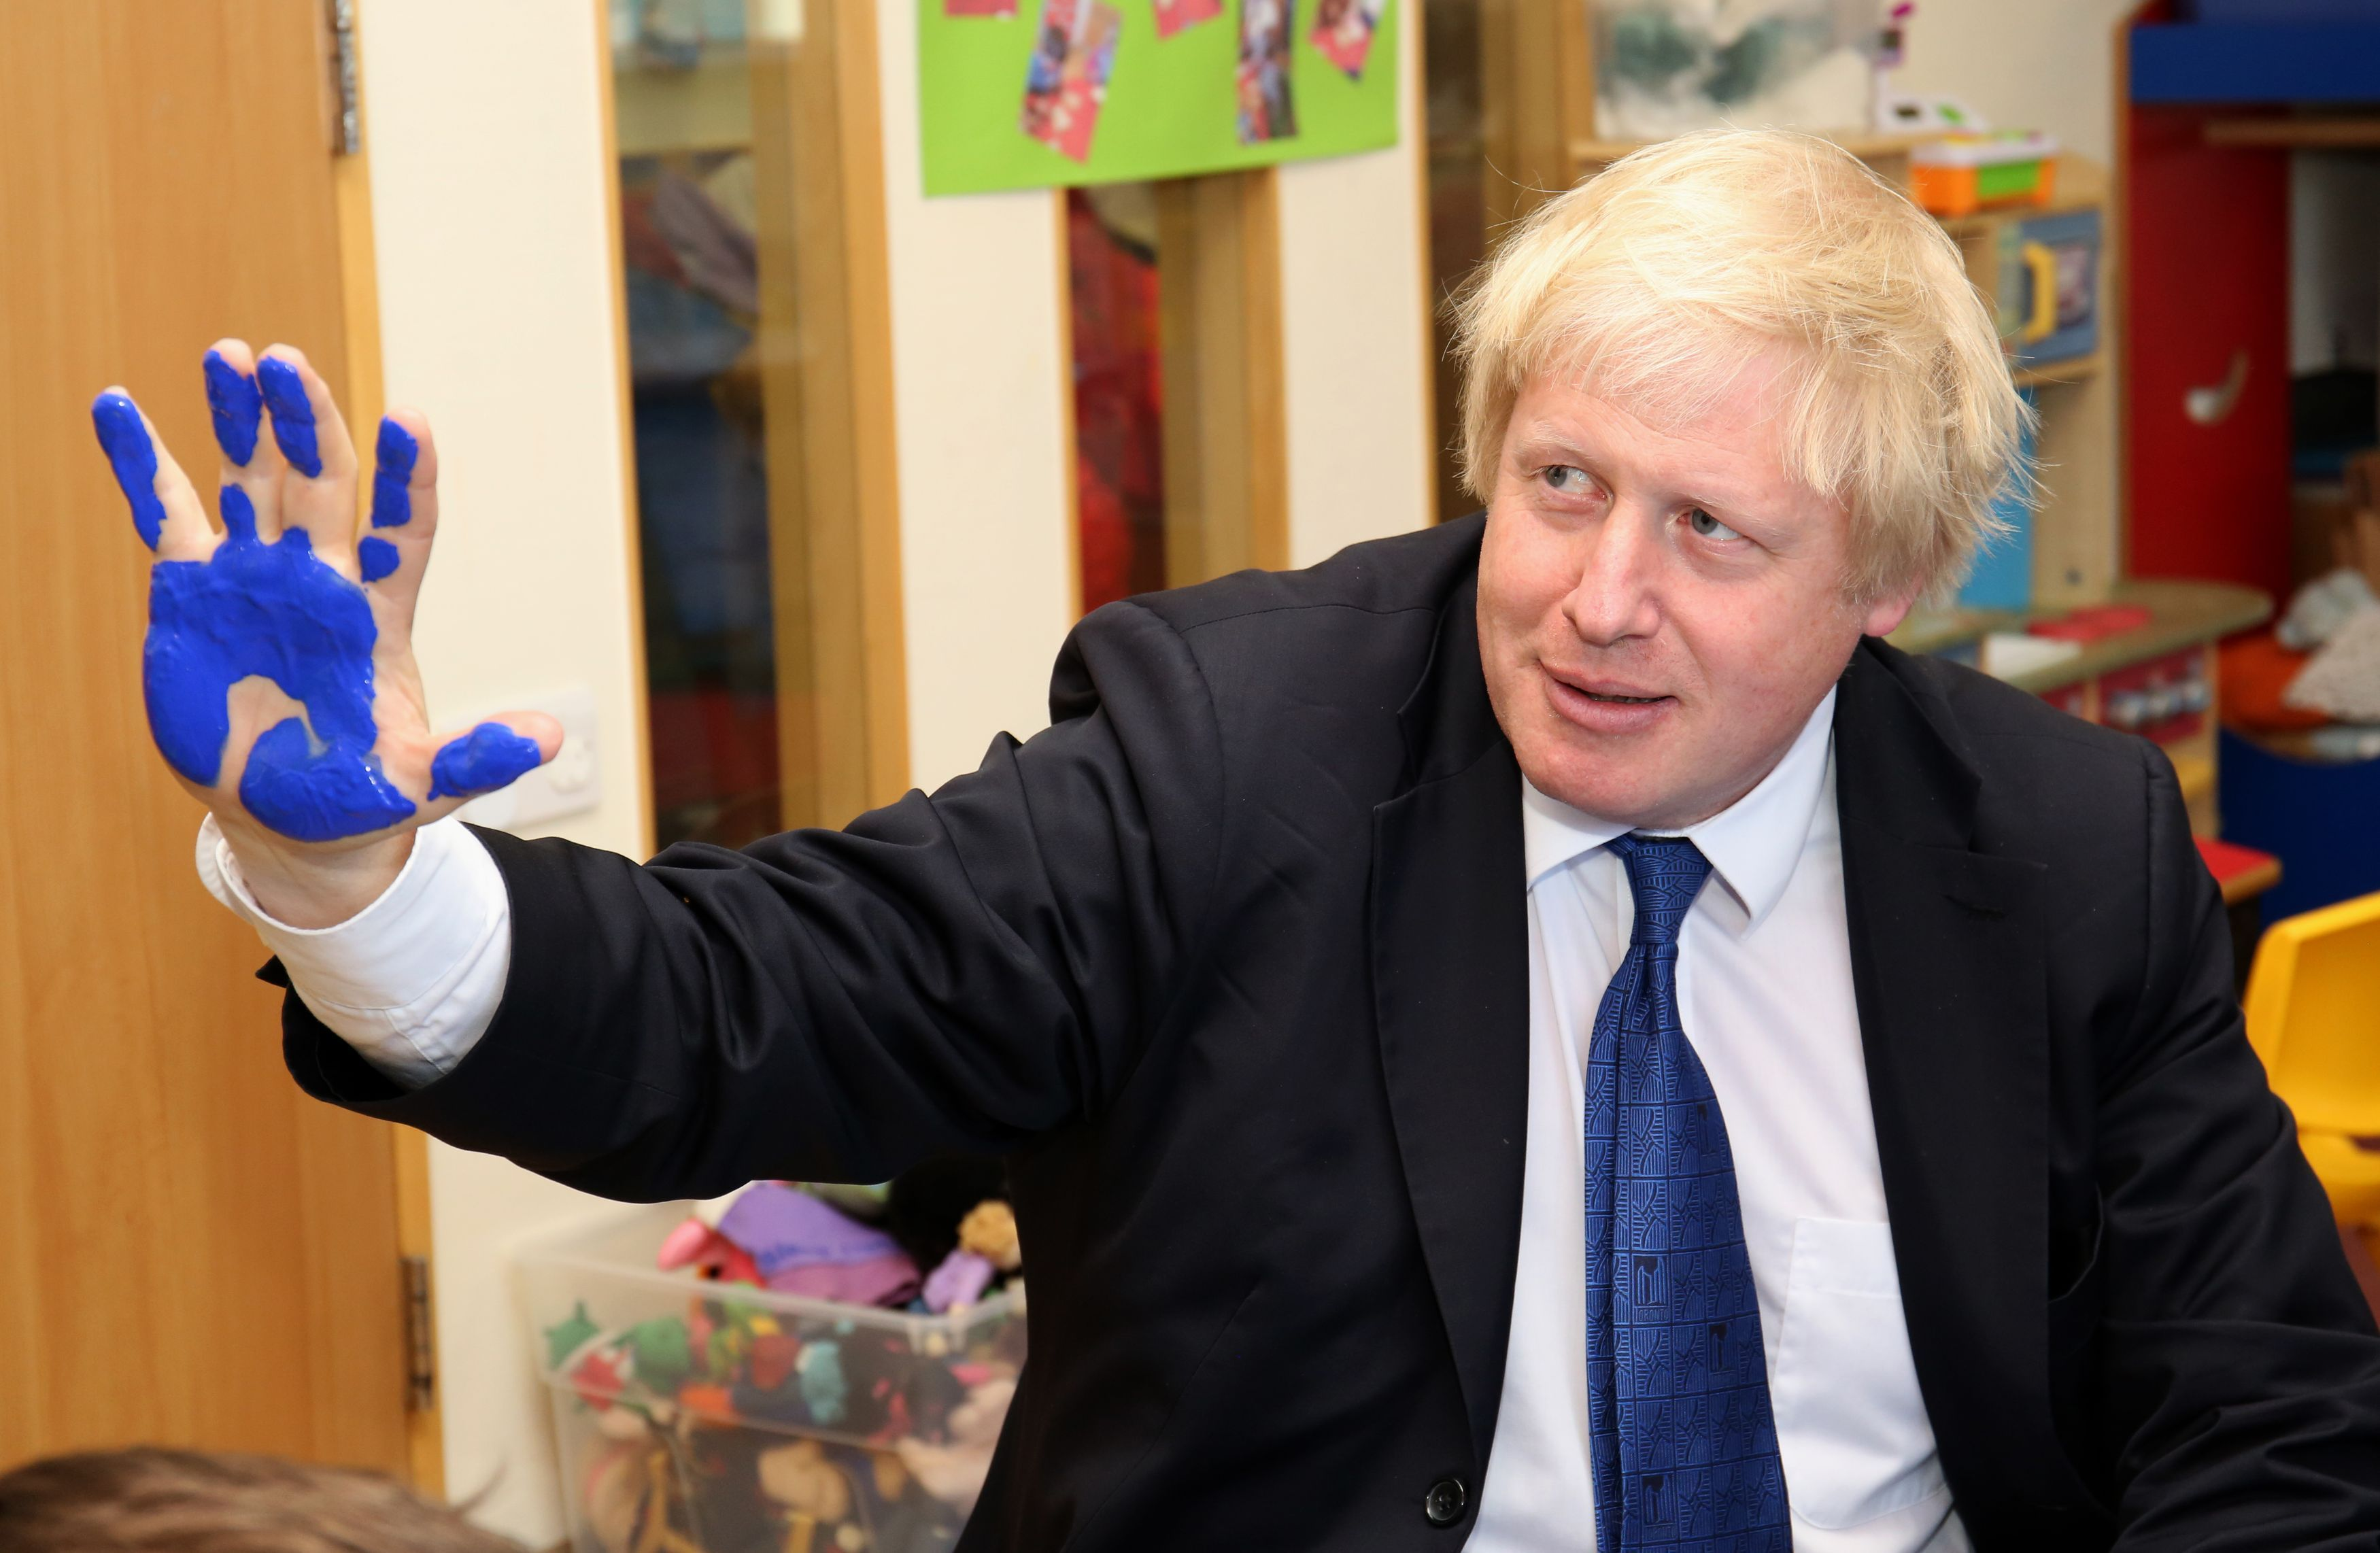 Mayor of London Boris Johnson takes part in a hand painting session during a General Election campaign visit to Advantage Children's Day Nursery in Surbiton, Surrey.